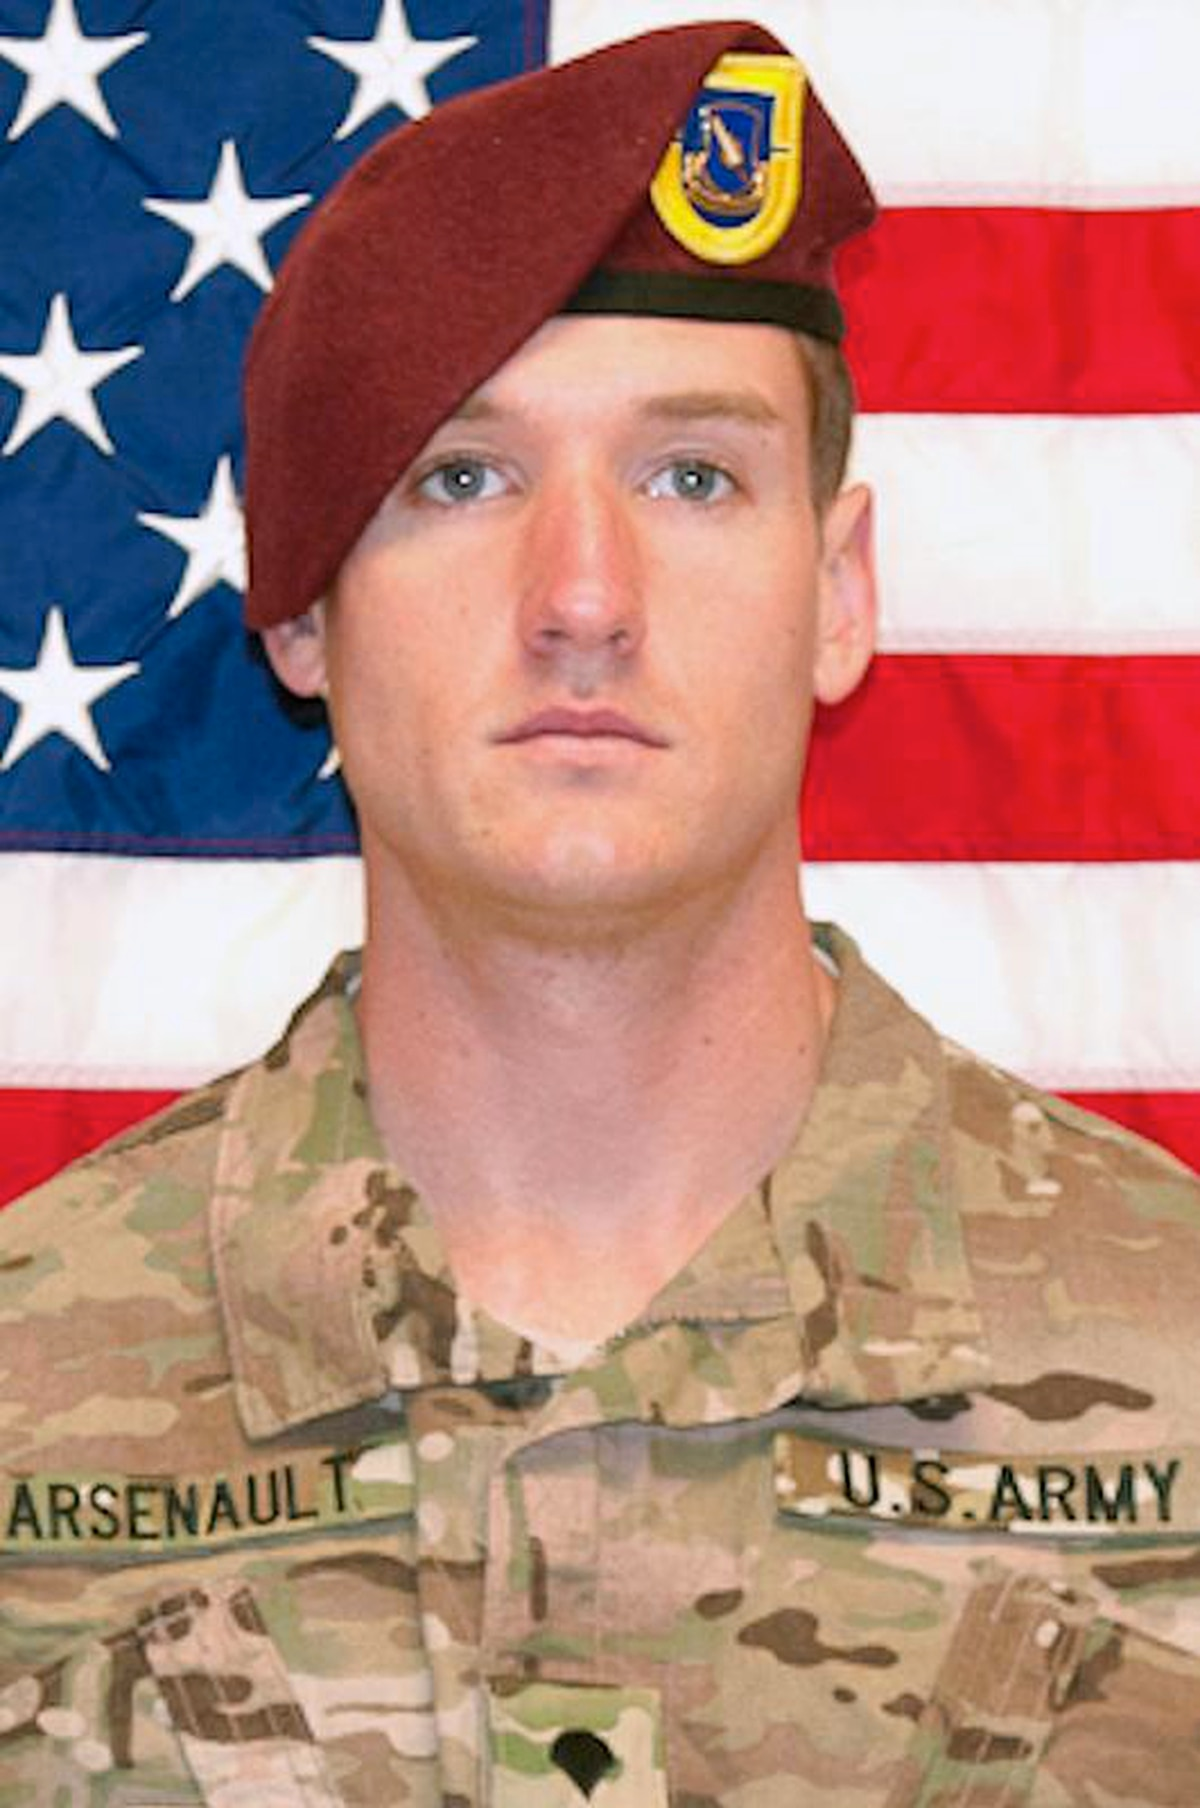 b442a606d689a 82nd Airborne soldier killed in Afghanistan